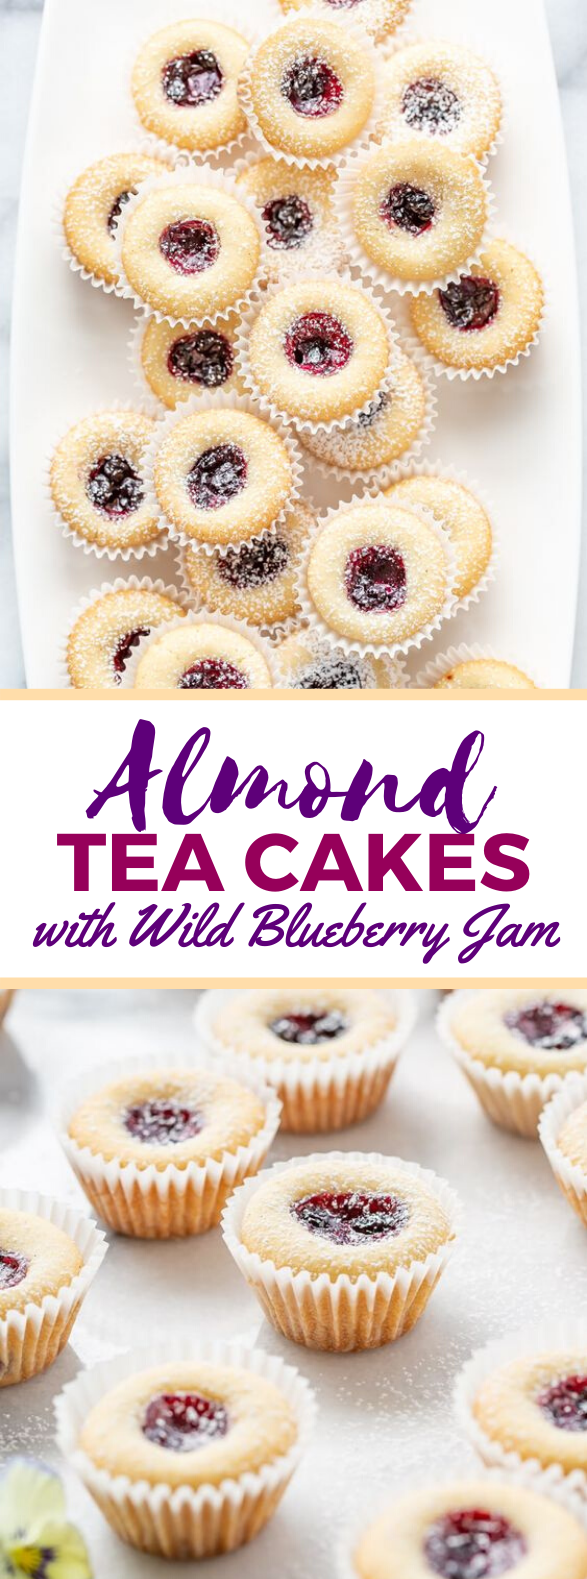 Almond Tea Cakes with Wild Blueberry Jam #desserts #cake